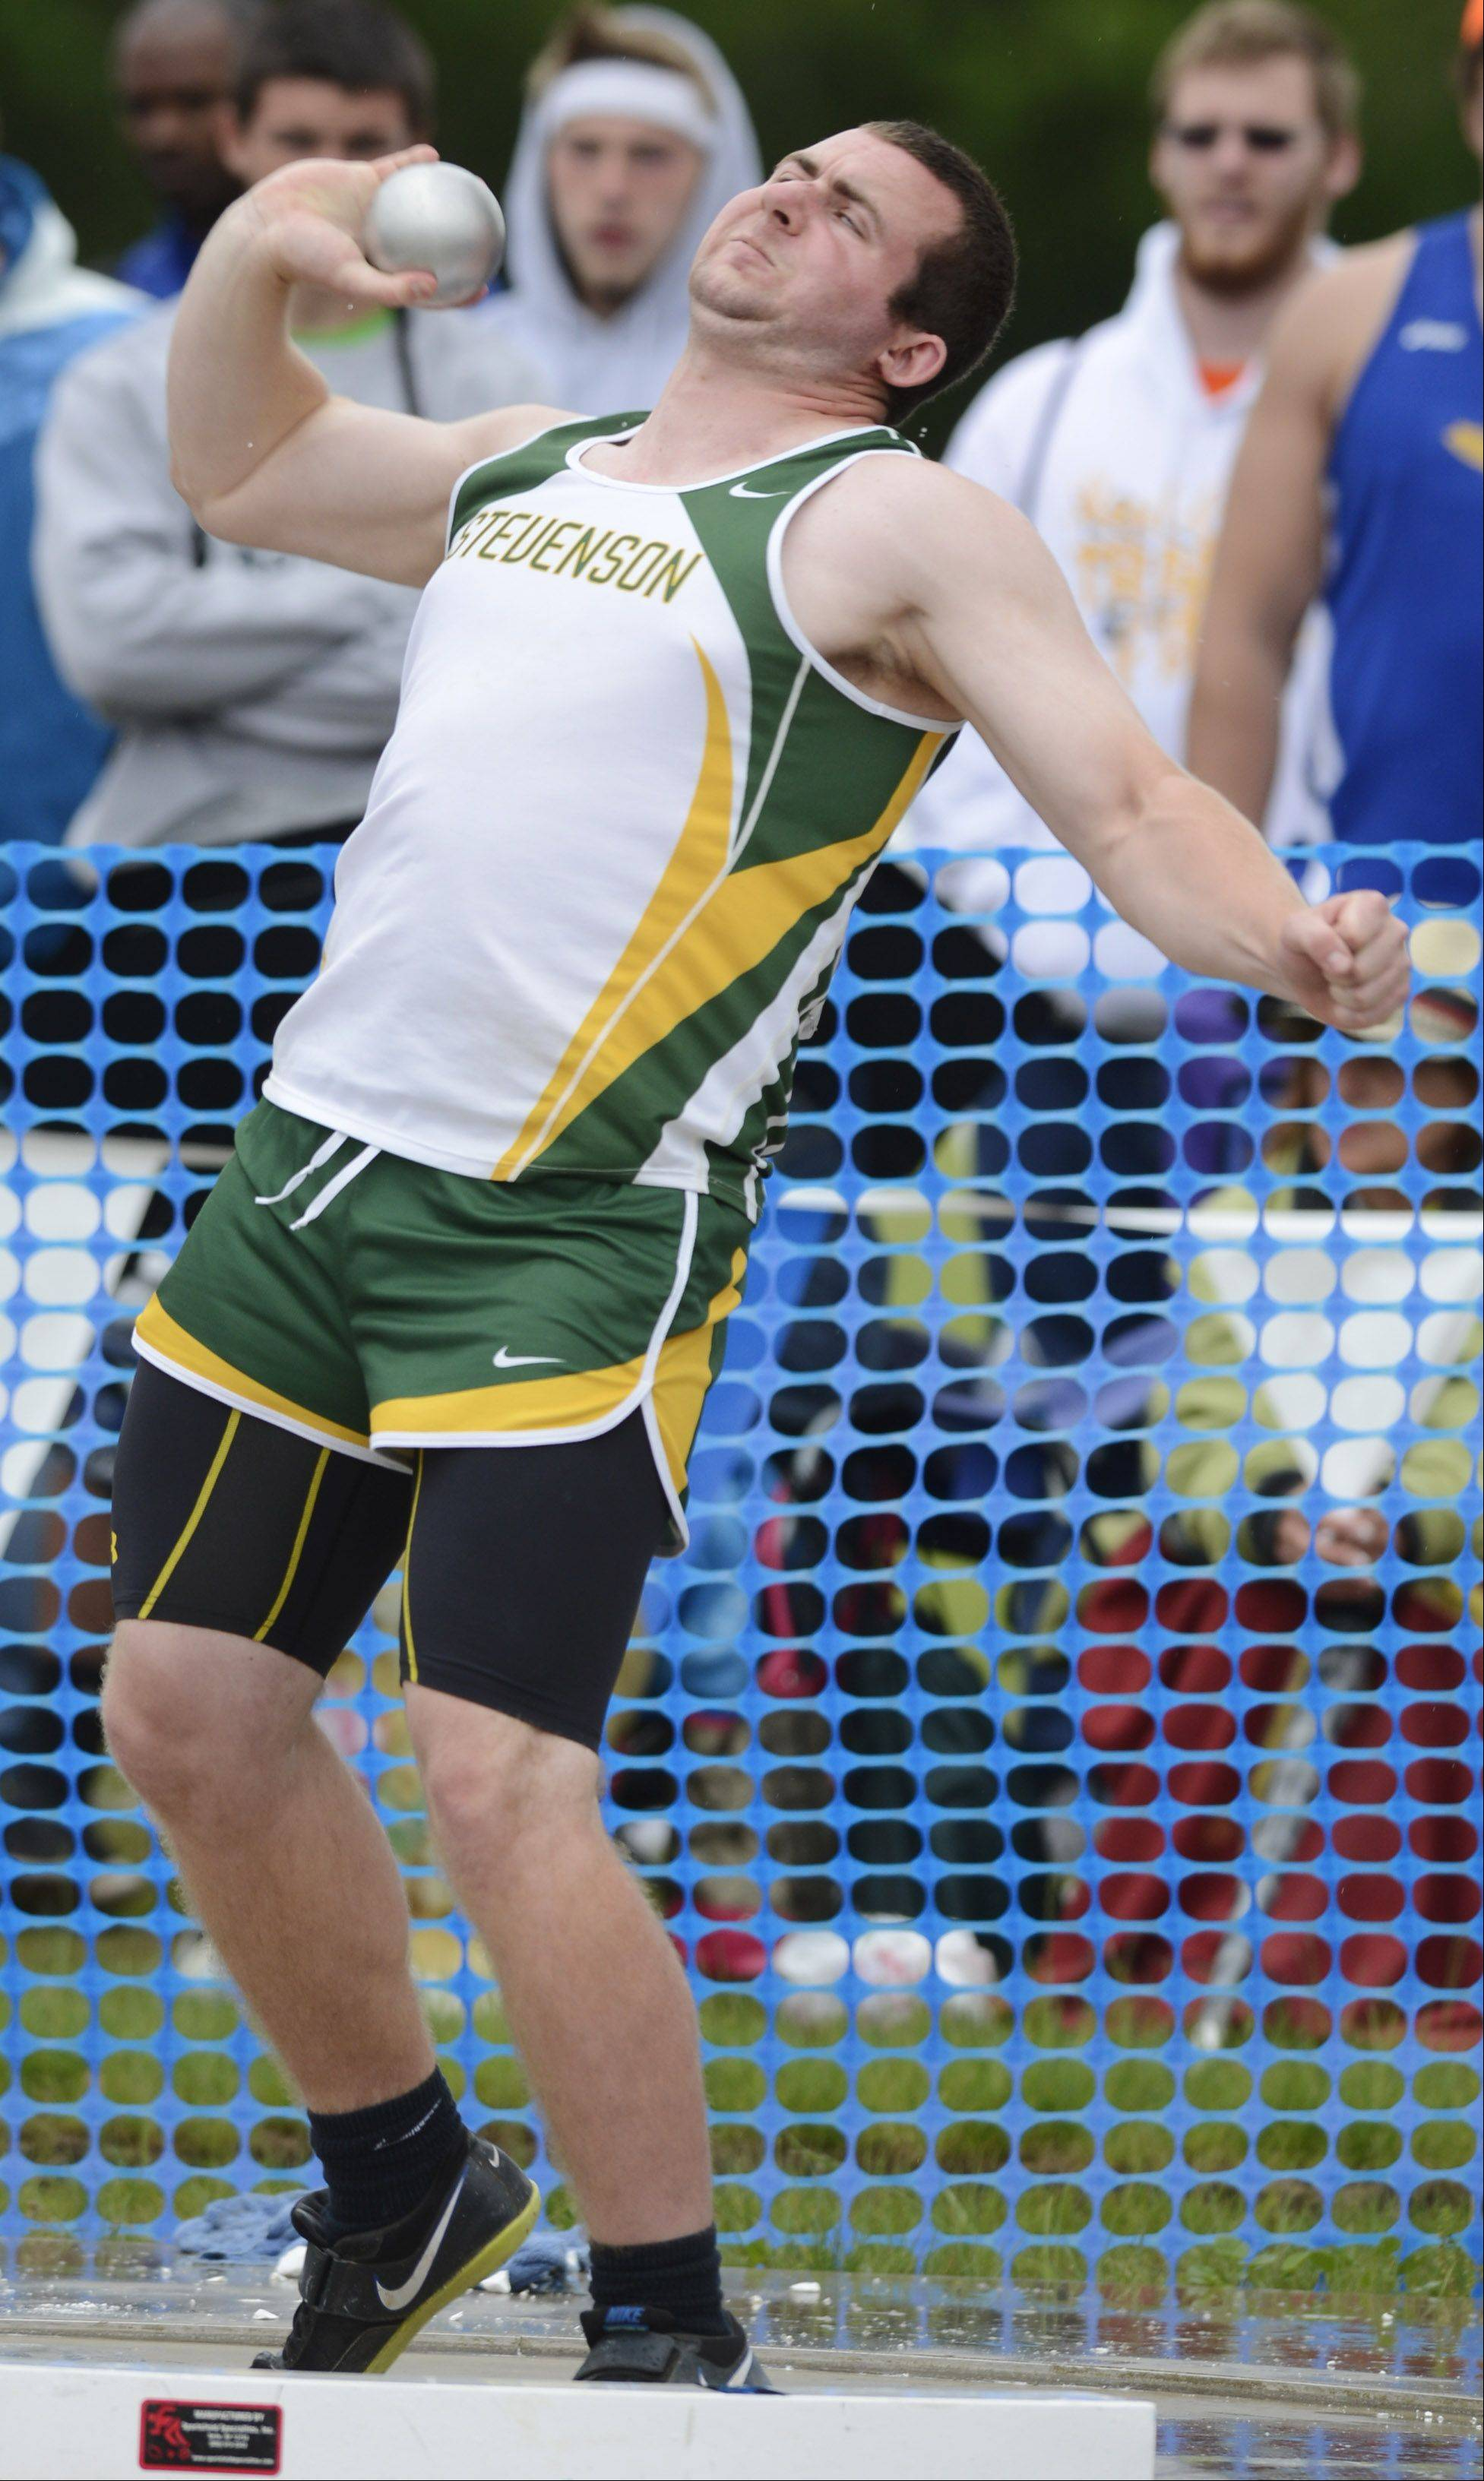 Stevenson's Jordan Fobbe throws in the Class 3A shot put during the boys track state finals in Charleston on Saturday.